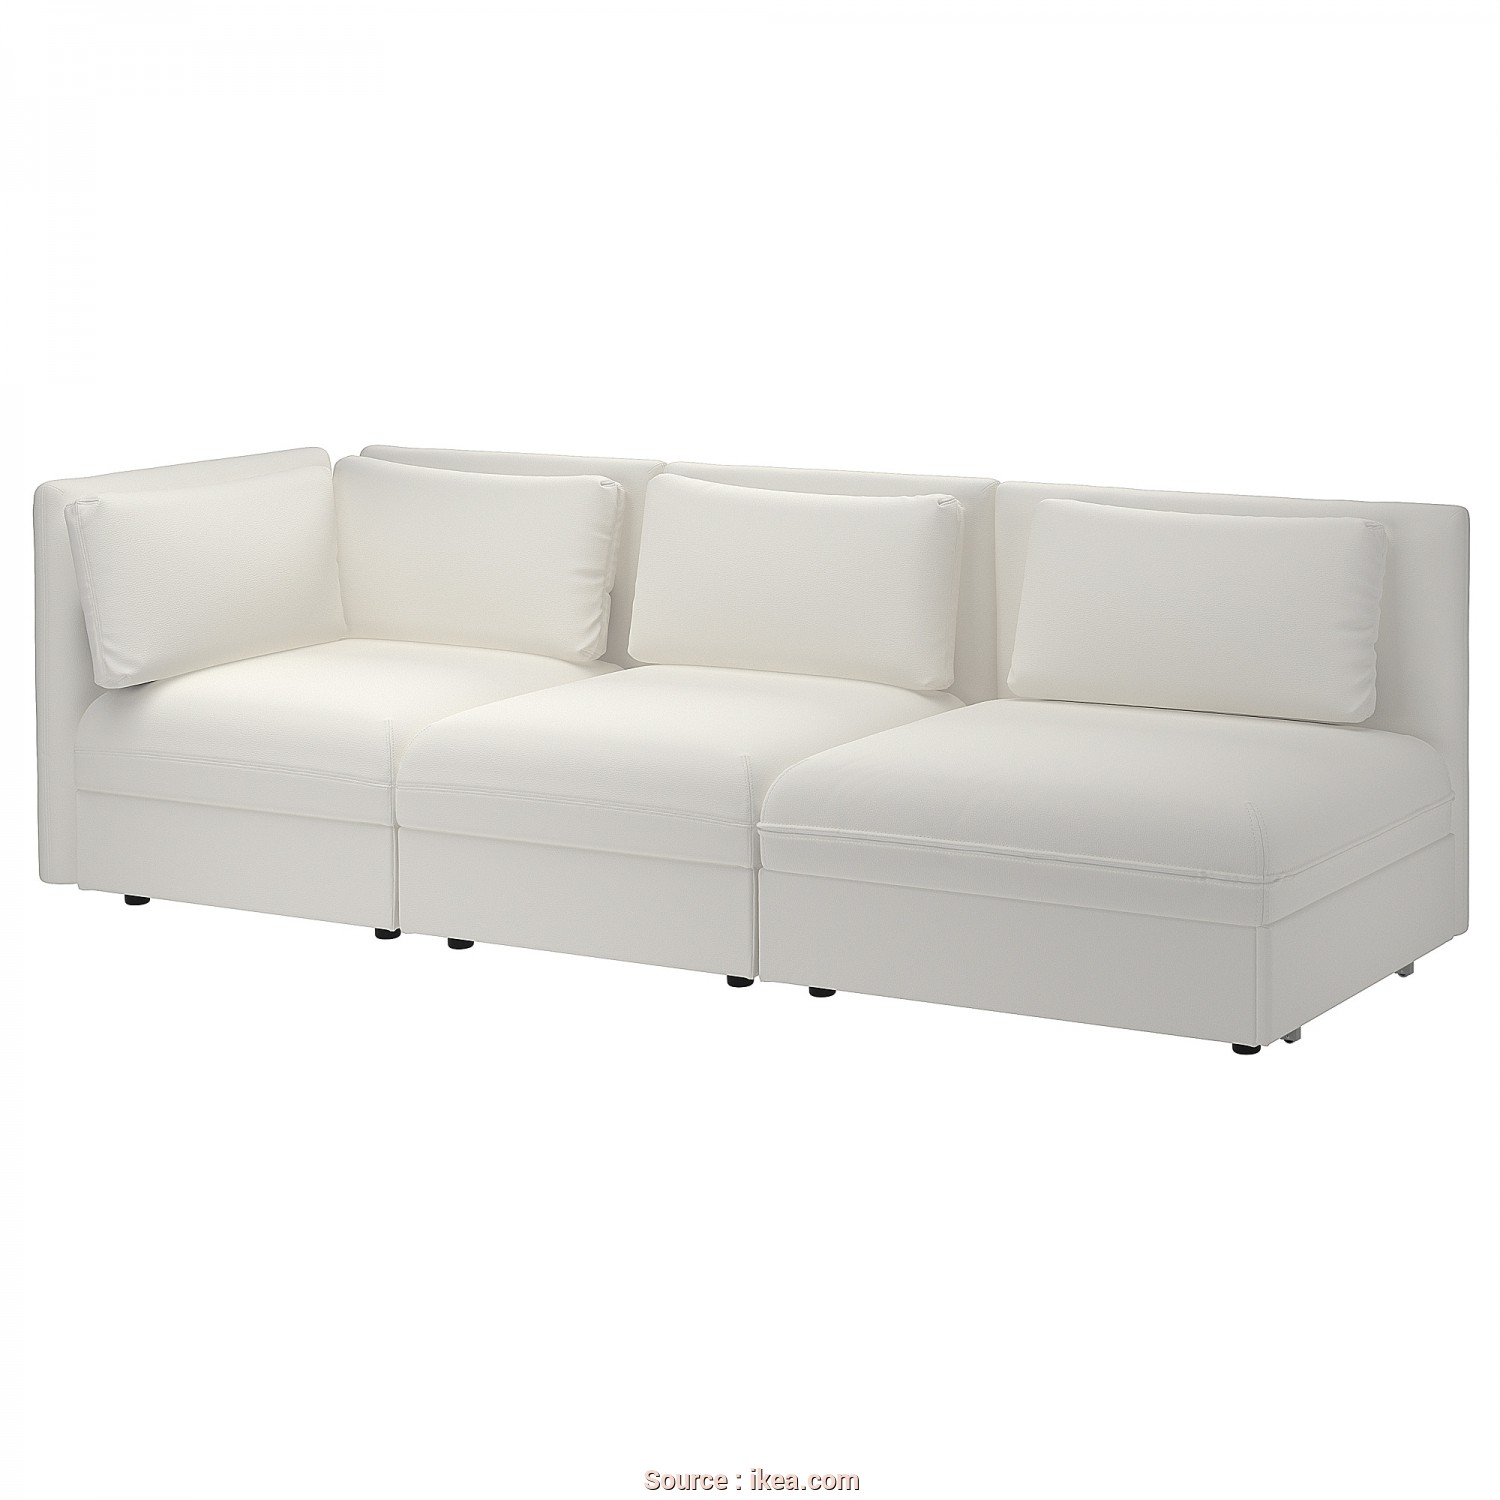 How To Open Ikea Beddinge, Loveable IKEA VALLENTUNA 3-Seat Modular Sofa With Sofa-Bed